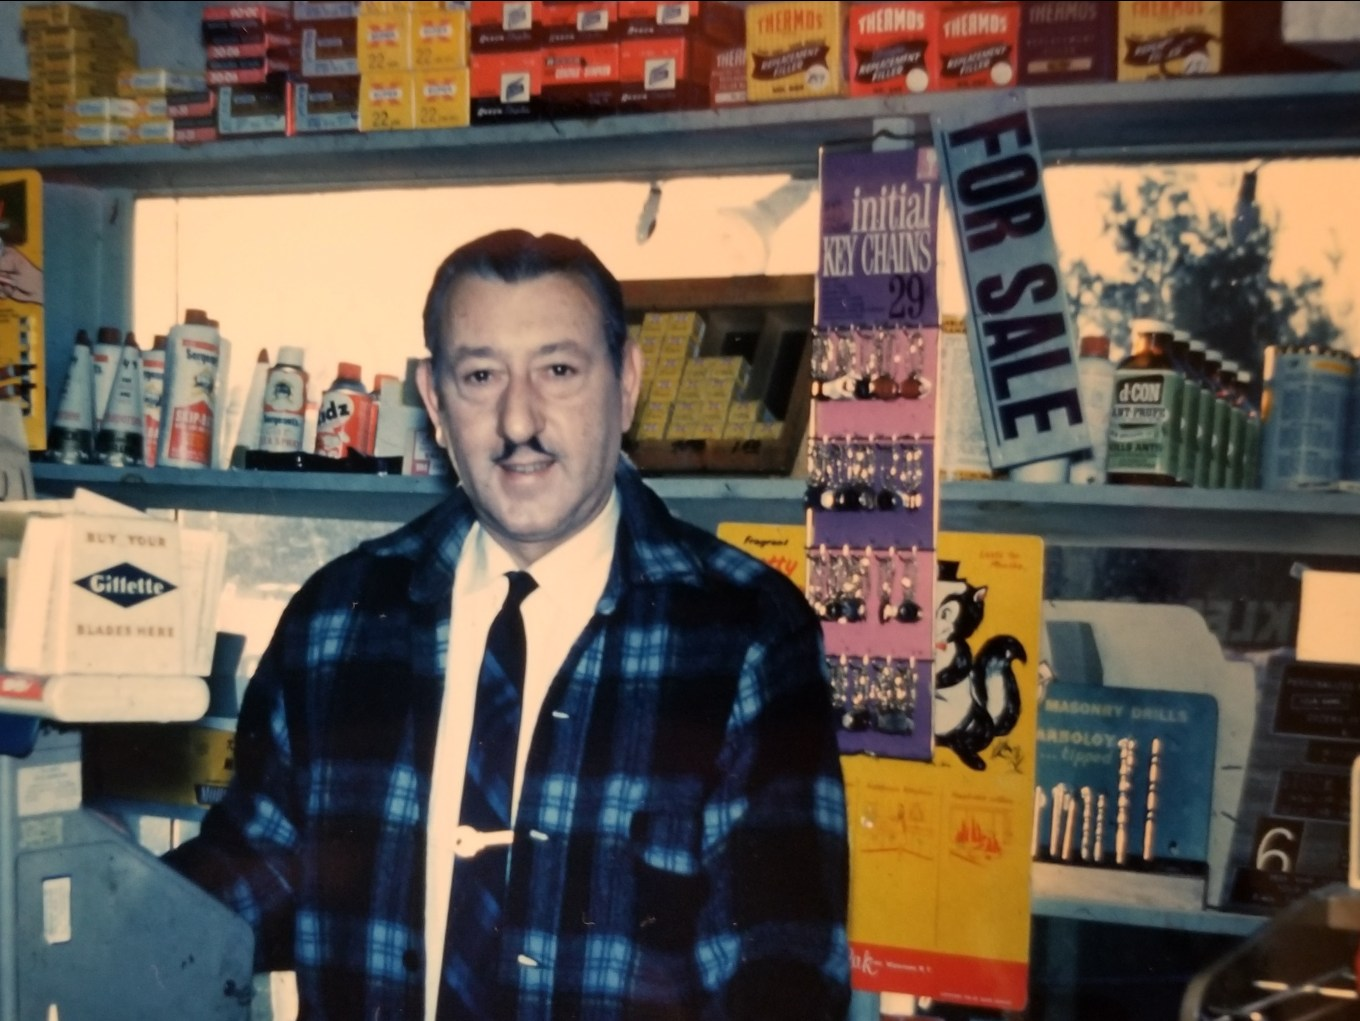 John DuCett behind counter